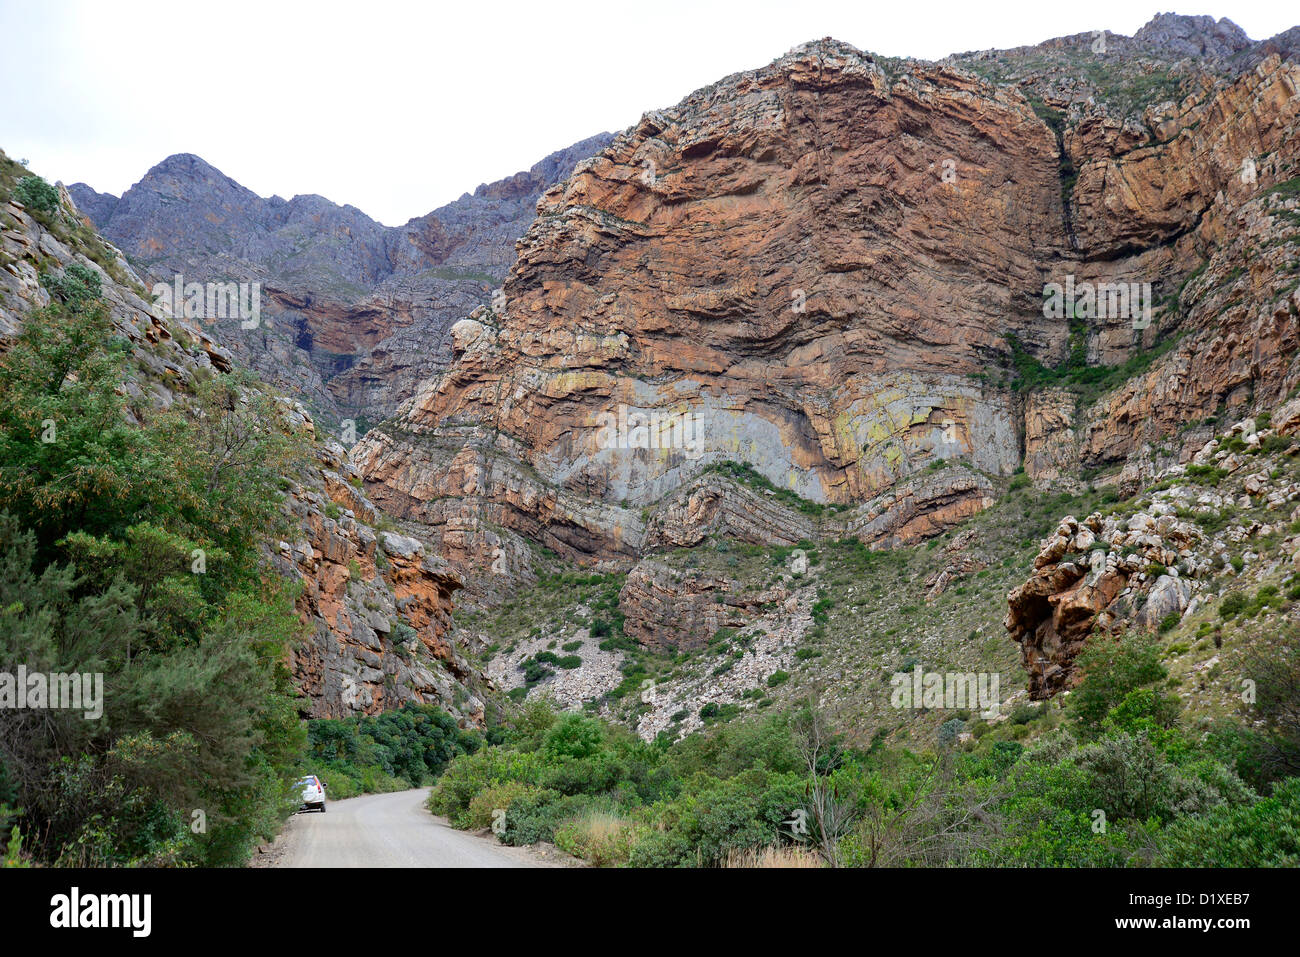 Cape fold mountains in Seweweekspoort, Western Cape, South Africa - Stock Image